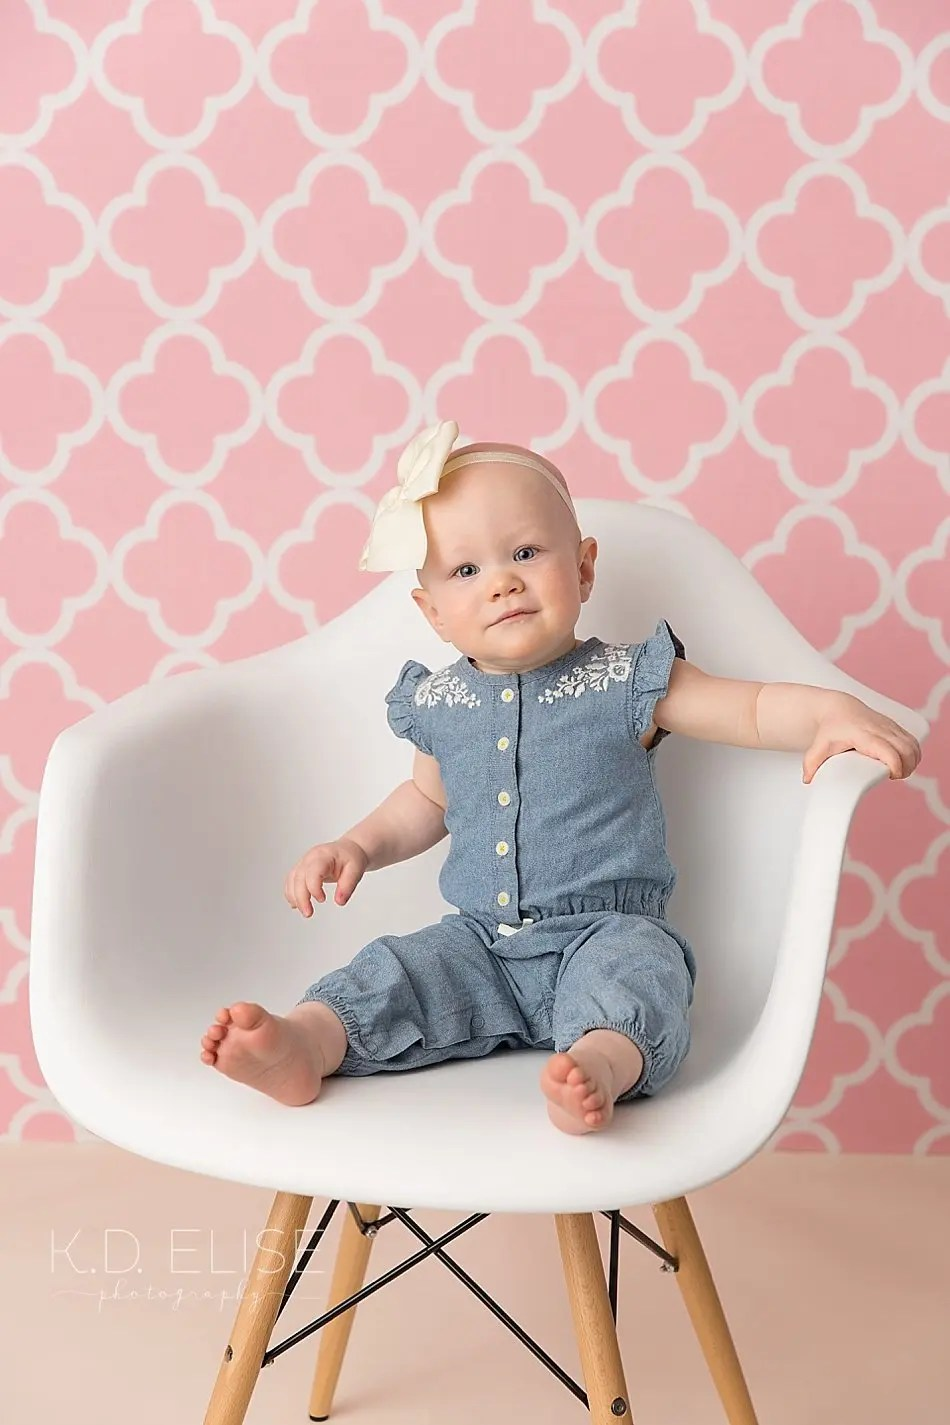 Smiling baby girl in a blue outfit sits a white chair for first birthday portraits with K.D. Elise Photography, a photographer in Pueblo, CO.